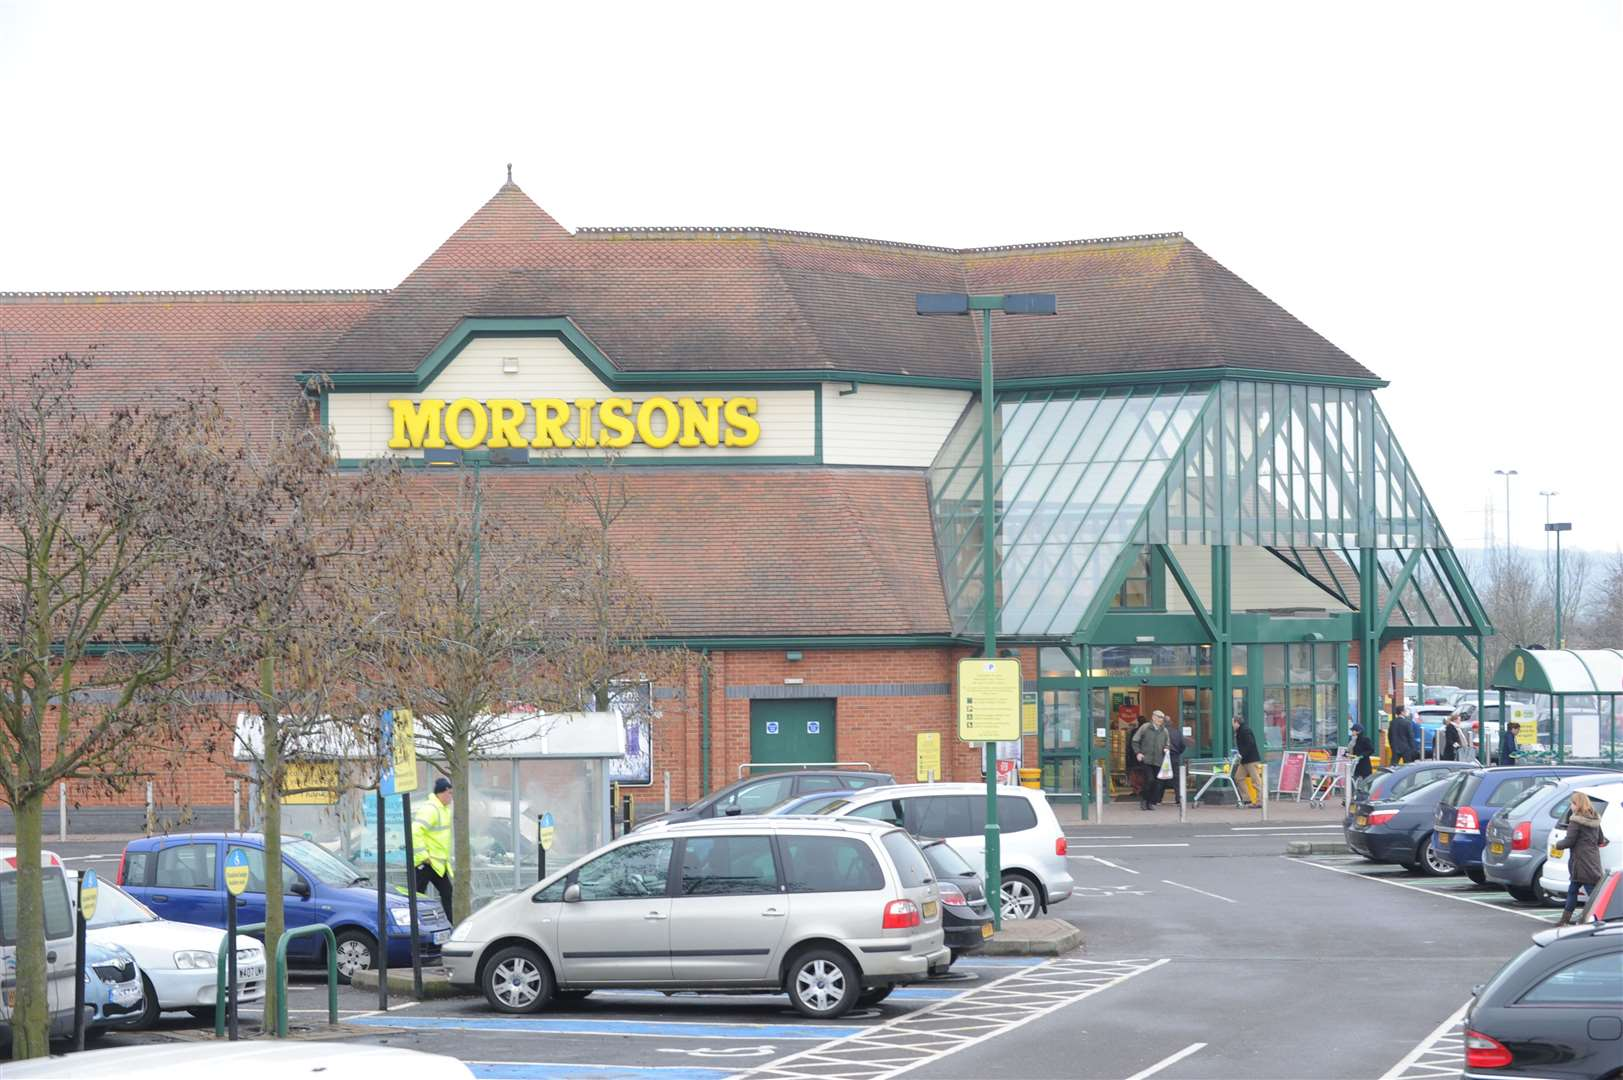 Morrisons in Coldharbour Road, Northfleet, is offering a three-course Christmas dinner for £7.50